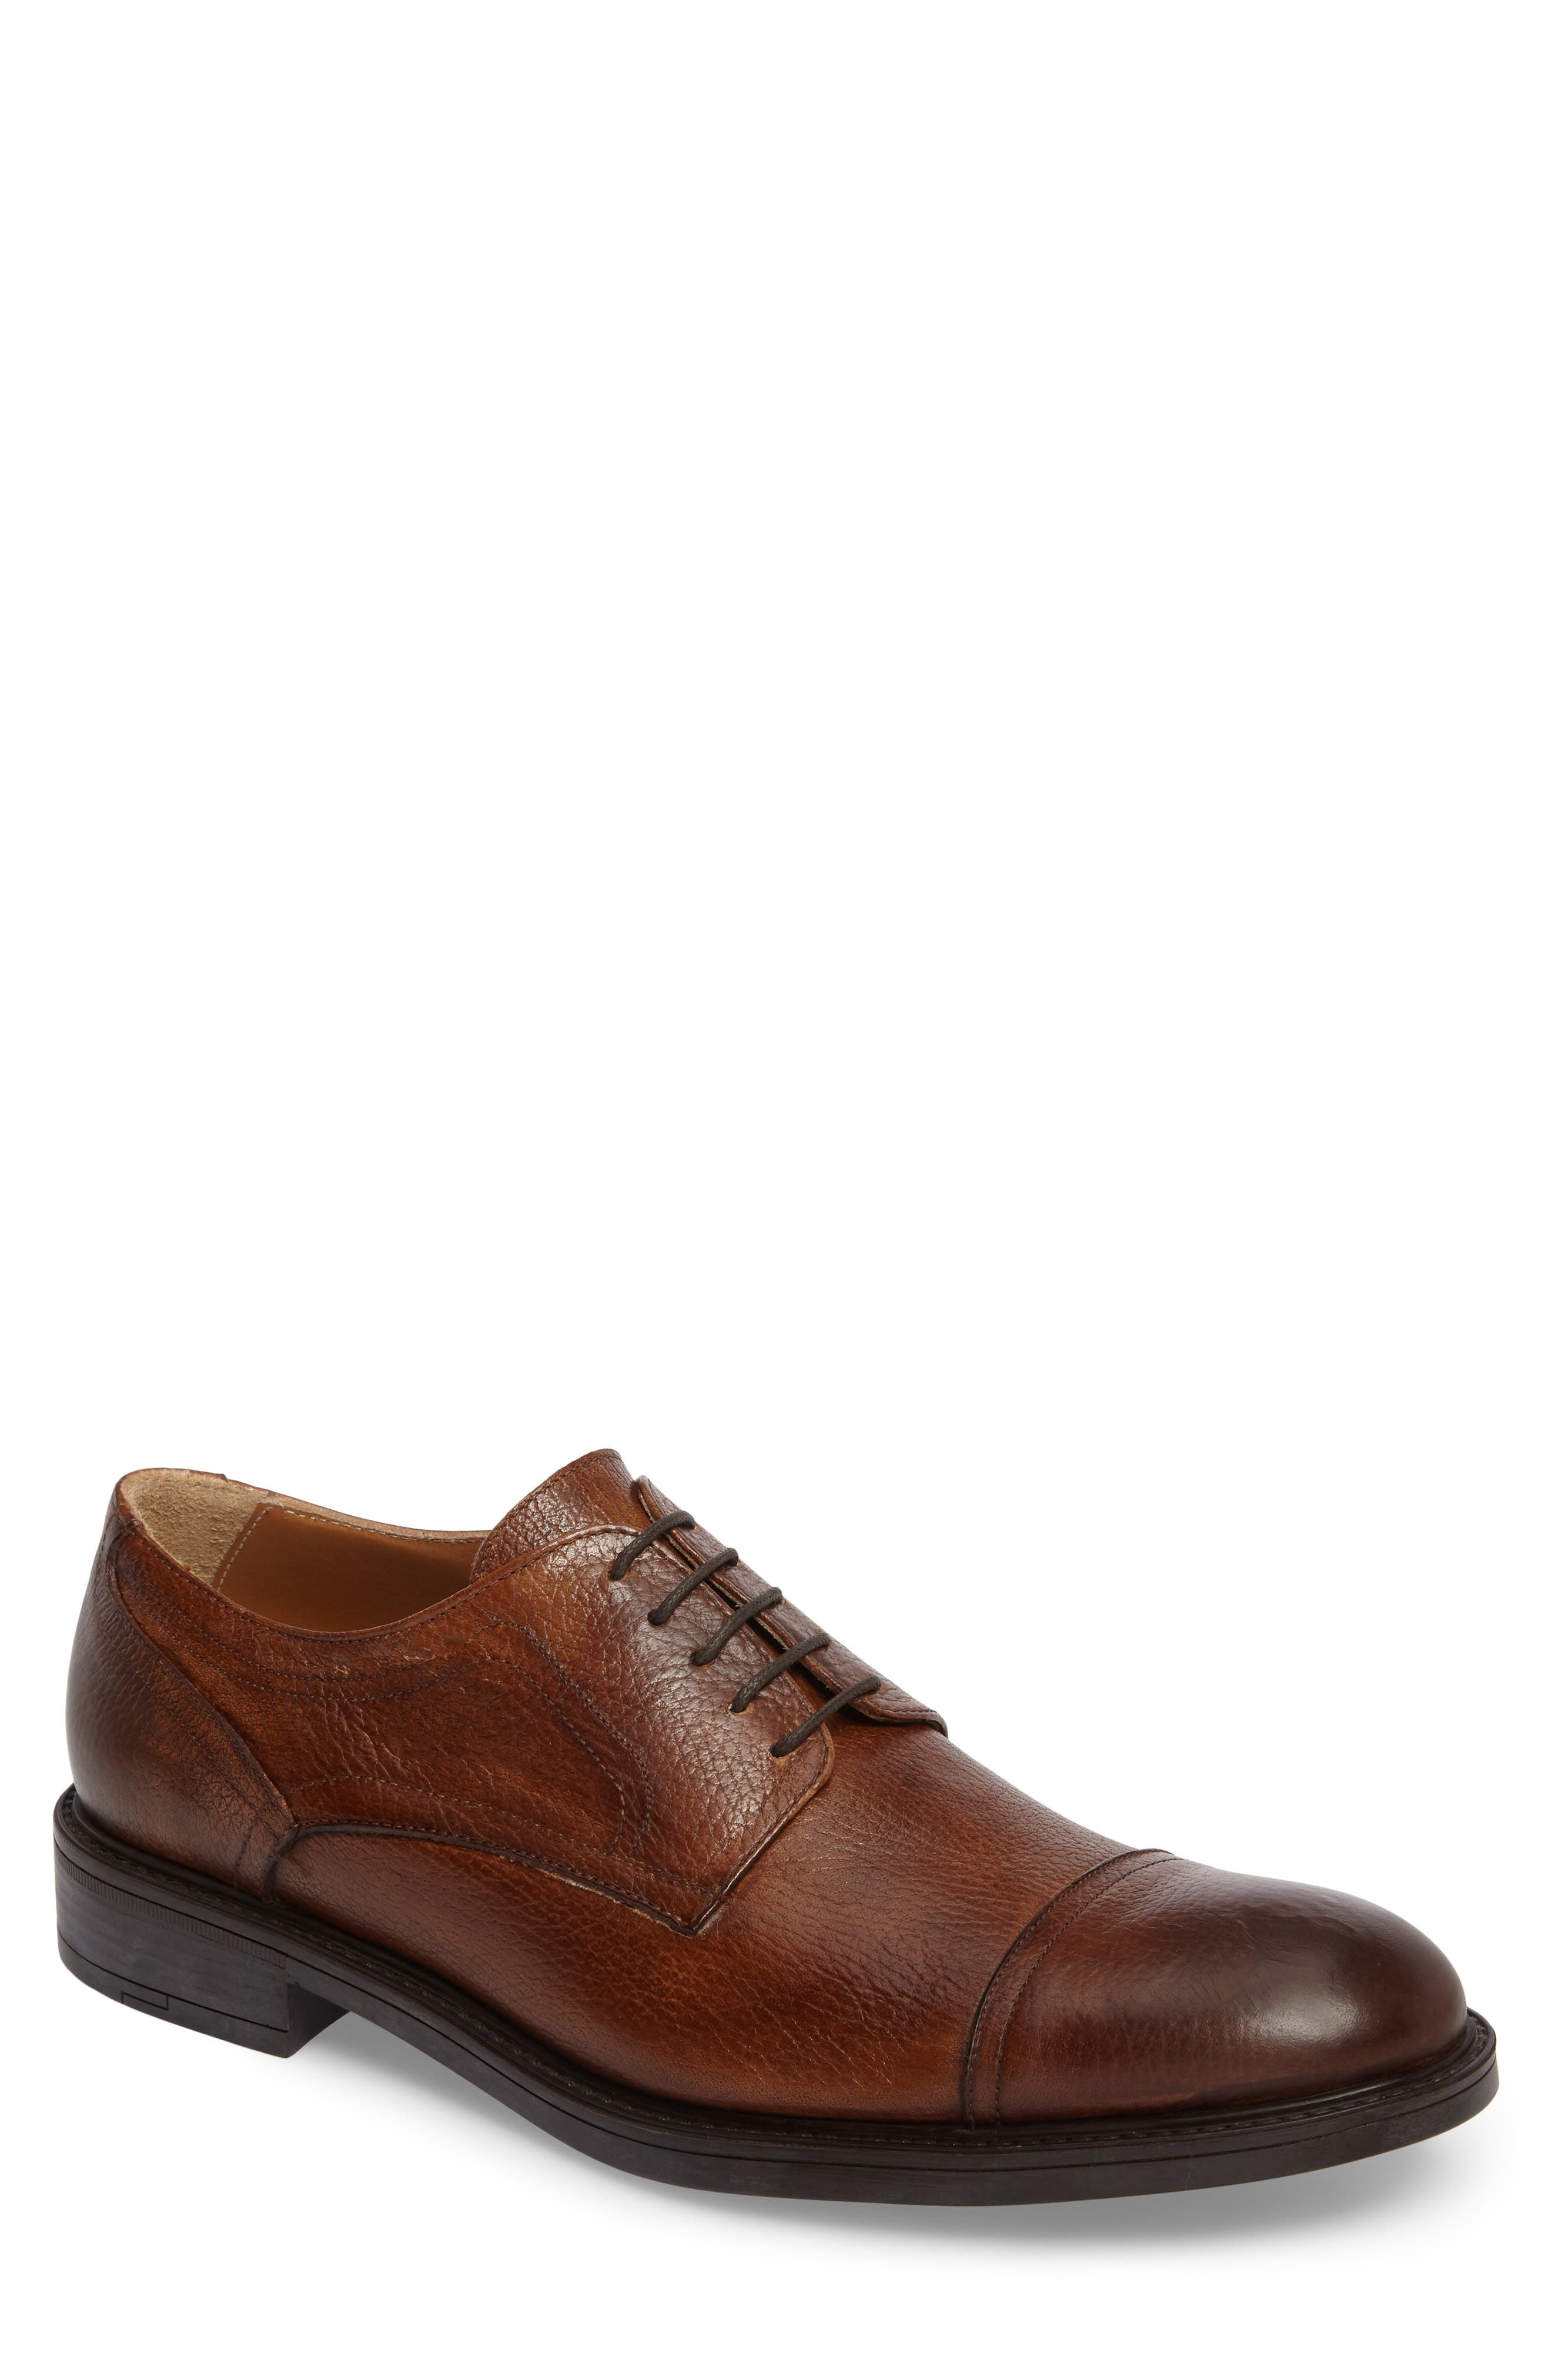 Alternate Image 1 Selected - Kenneth Cole New York Cap Toe Derby (Men)